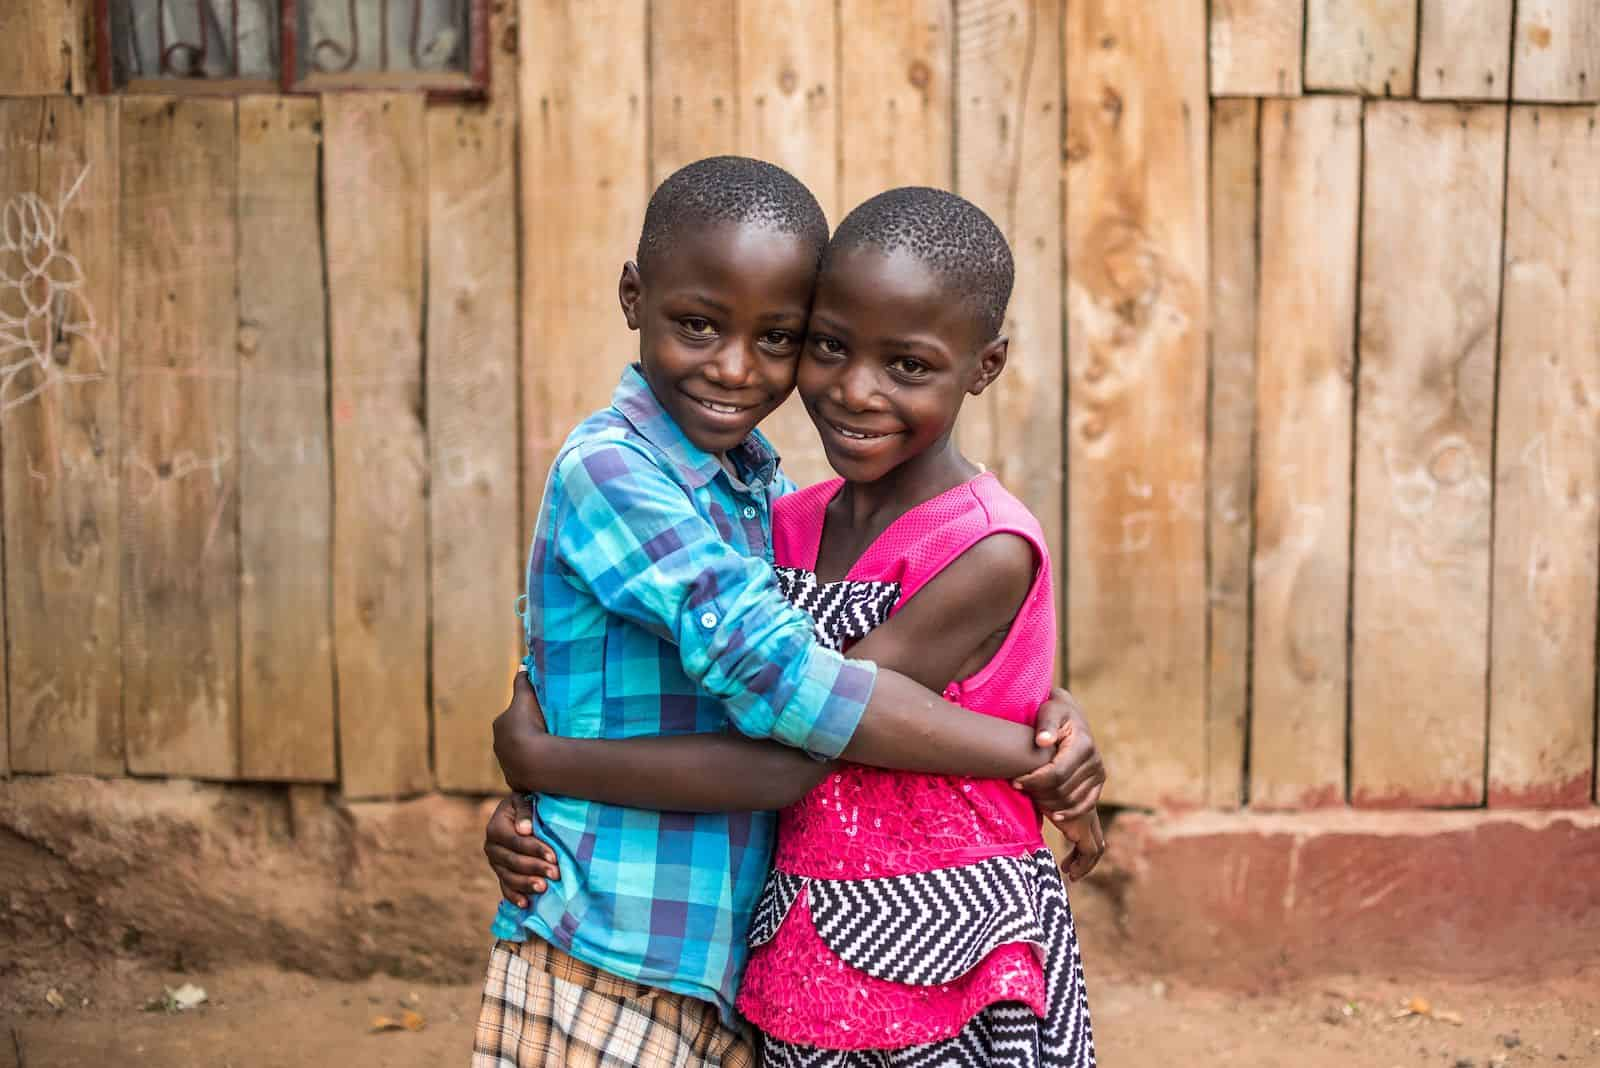 How to Help Kids in Need: Two girls hug each other, standing in front of a wooden home